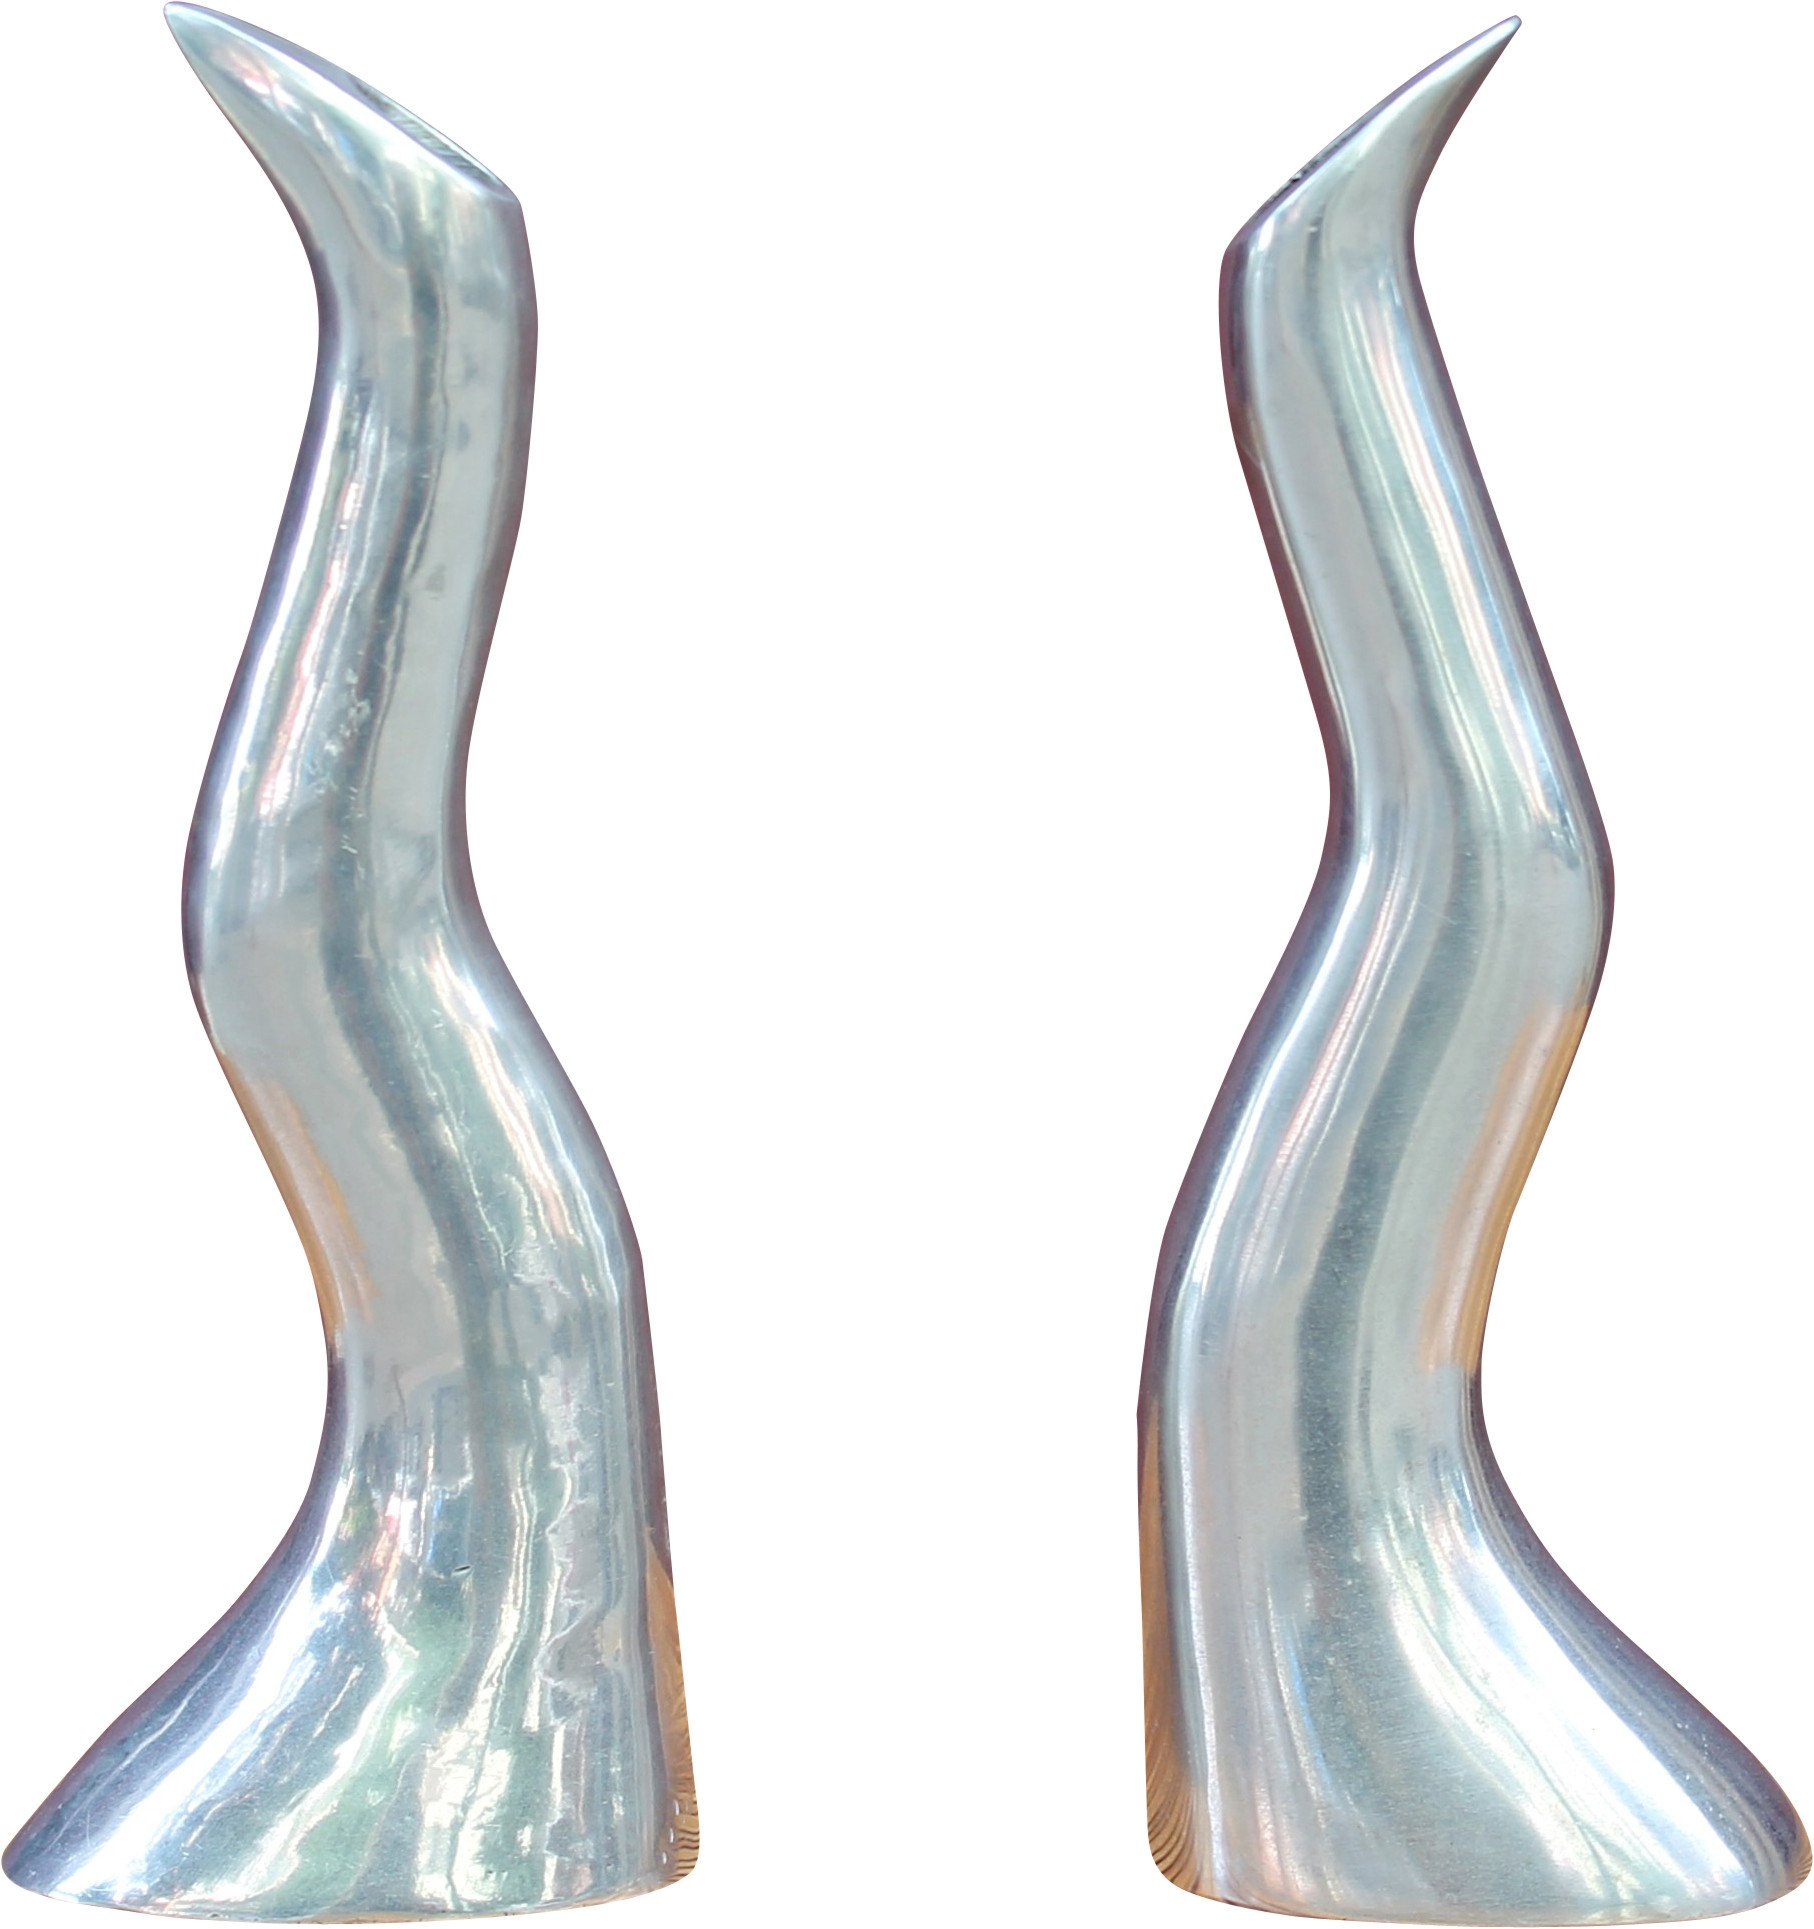 Pair of Candleholder by A. Efwerlund, Sweden, 1970s